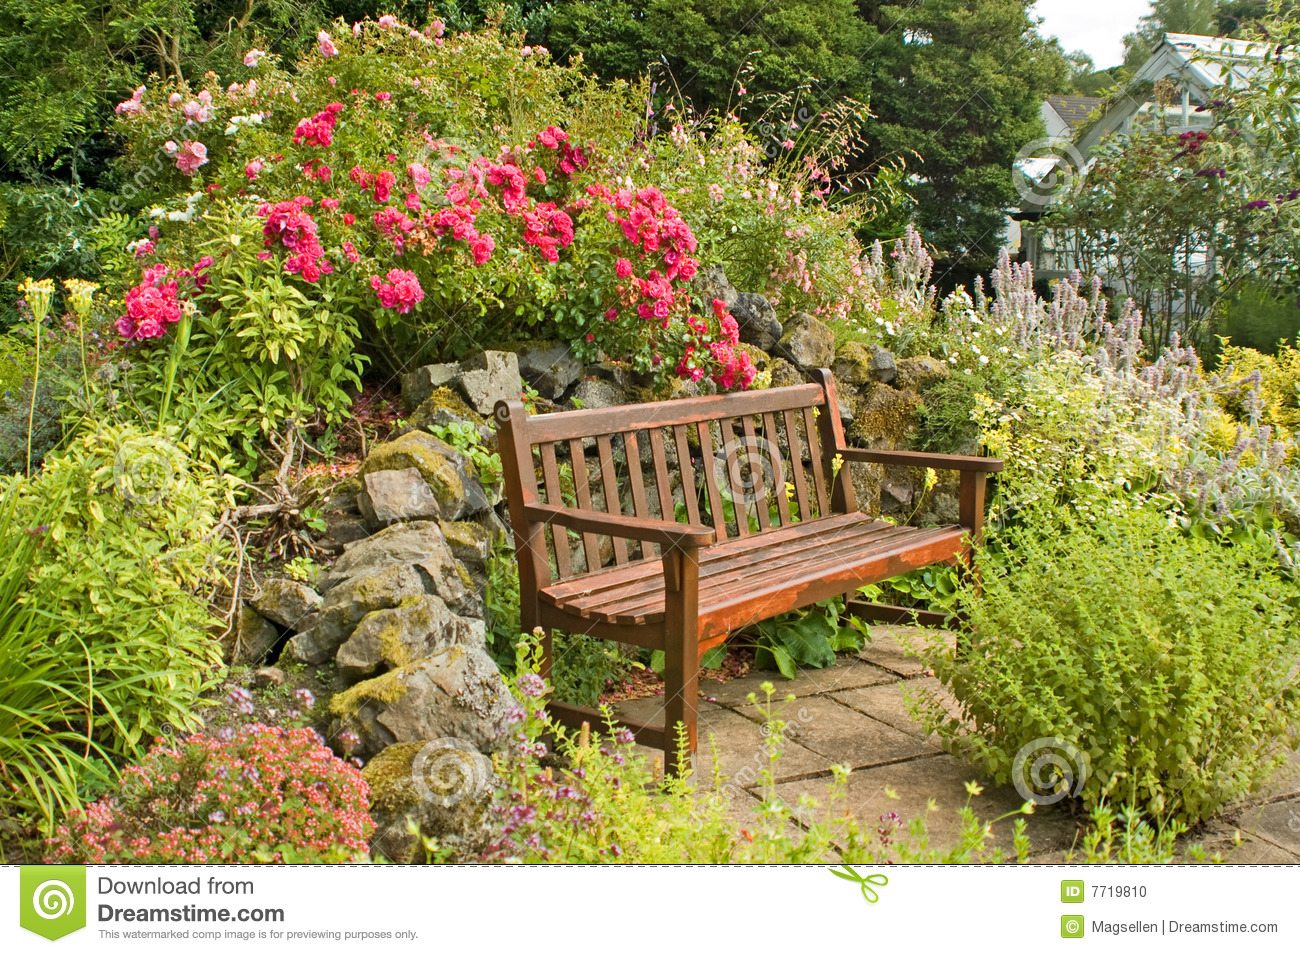 Plan De Banc De Jardin Of Banc De Jardin Photo Stock Image Du Greenhouse Roches